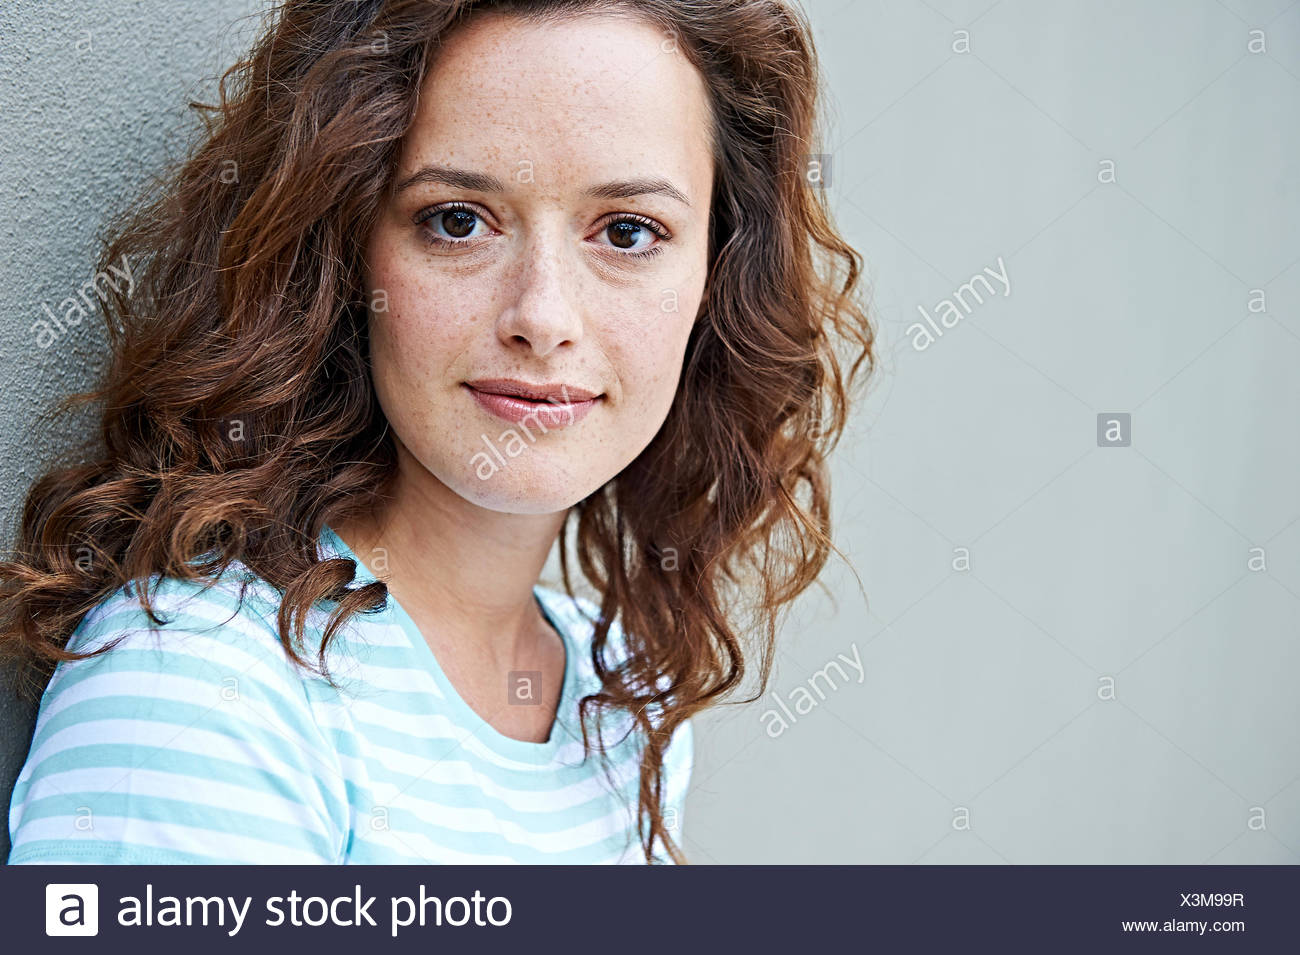 Close up of woman with freckles - Stock Image